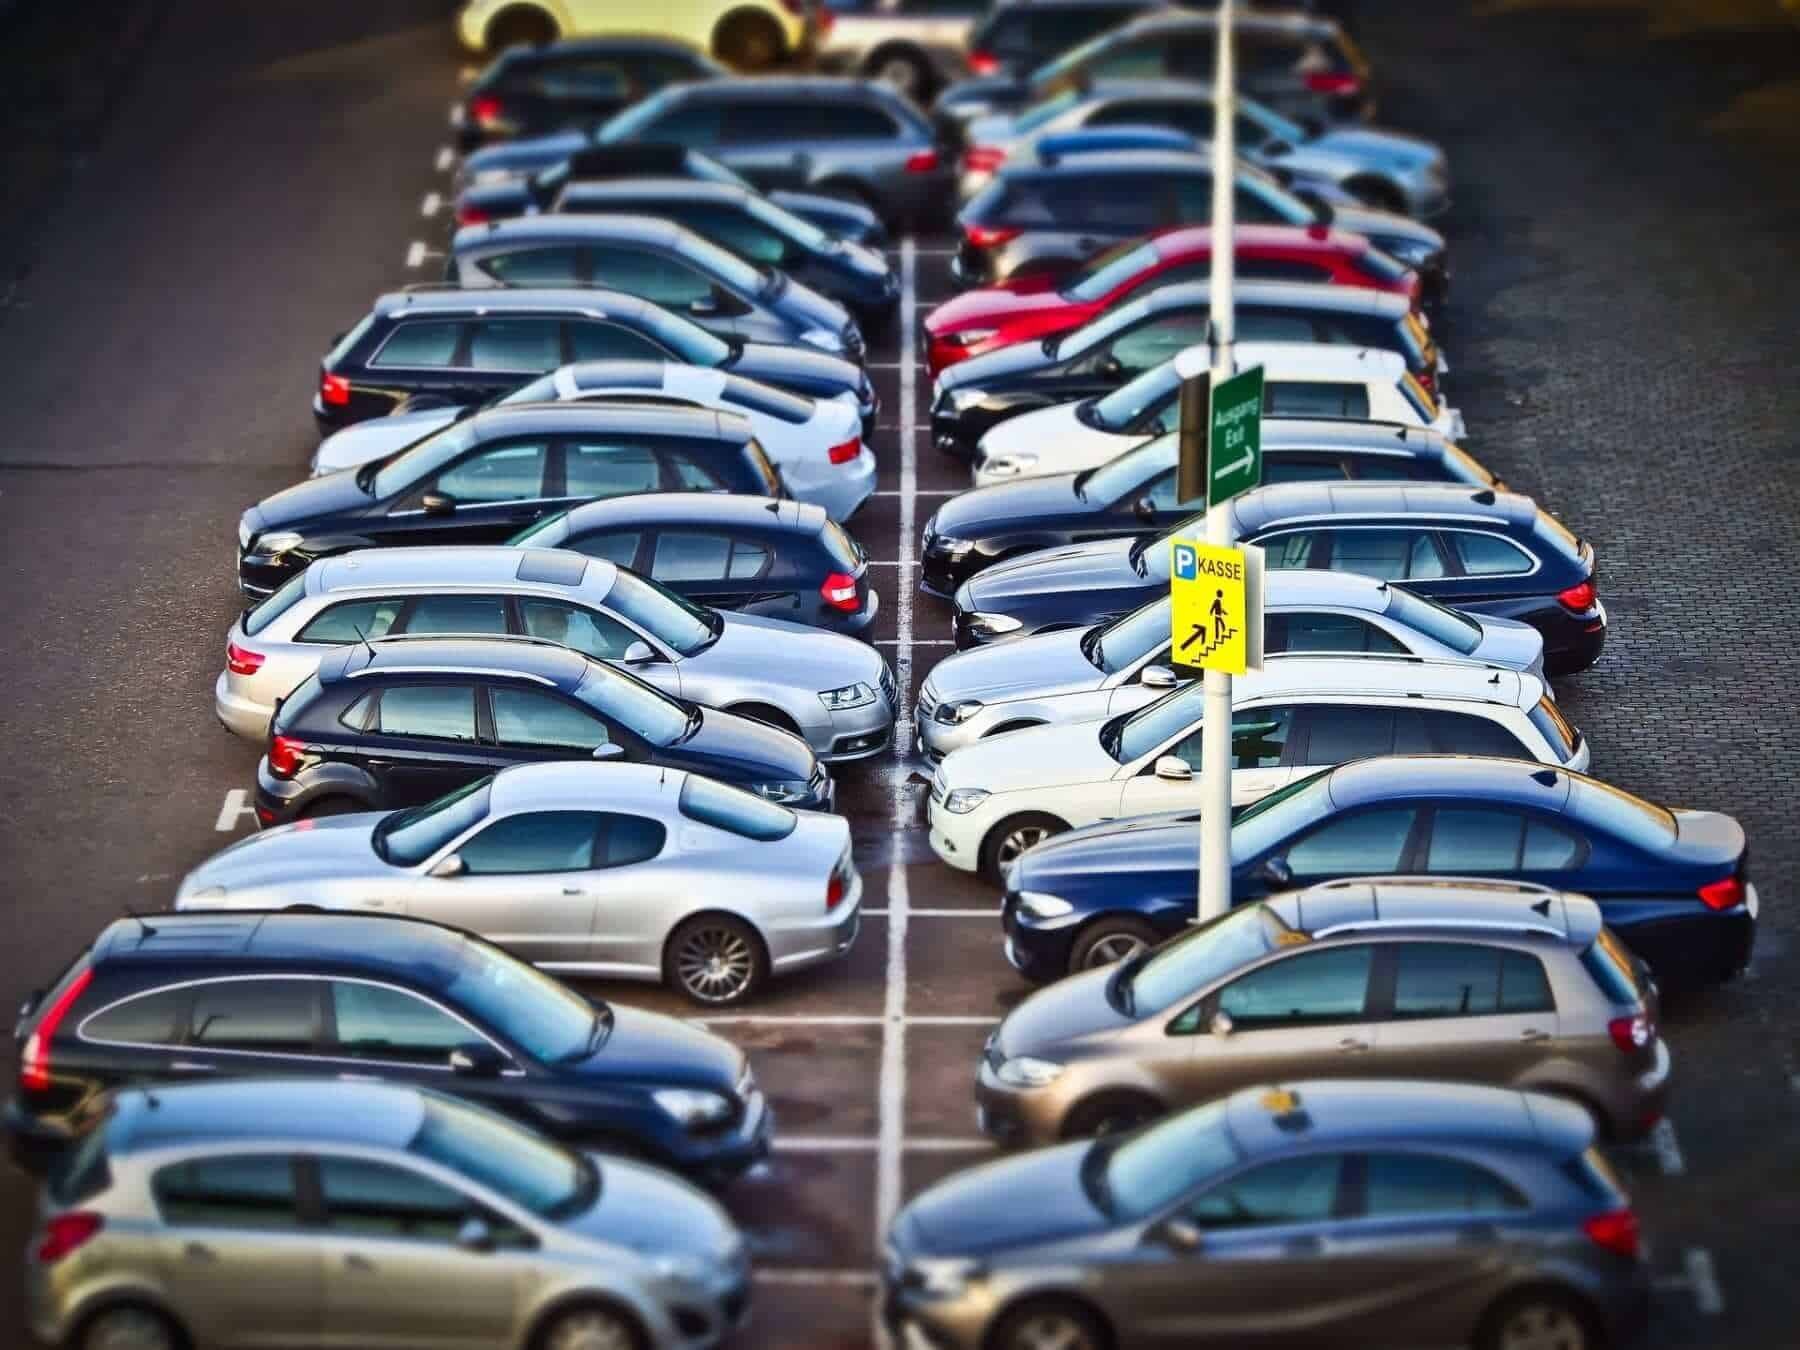 Parking Lot PixaBay